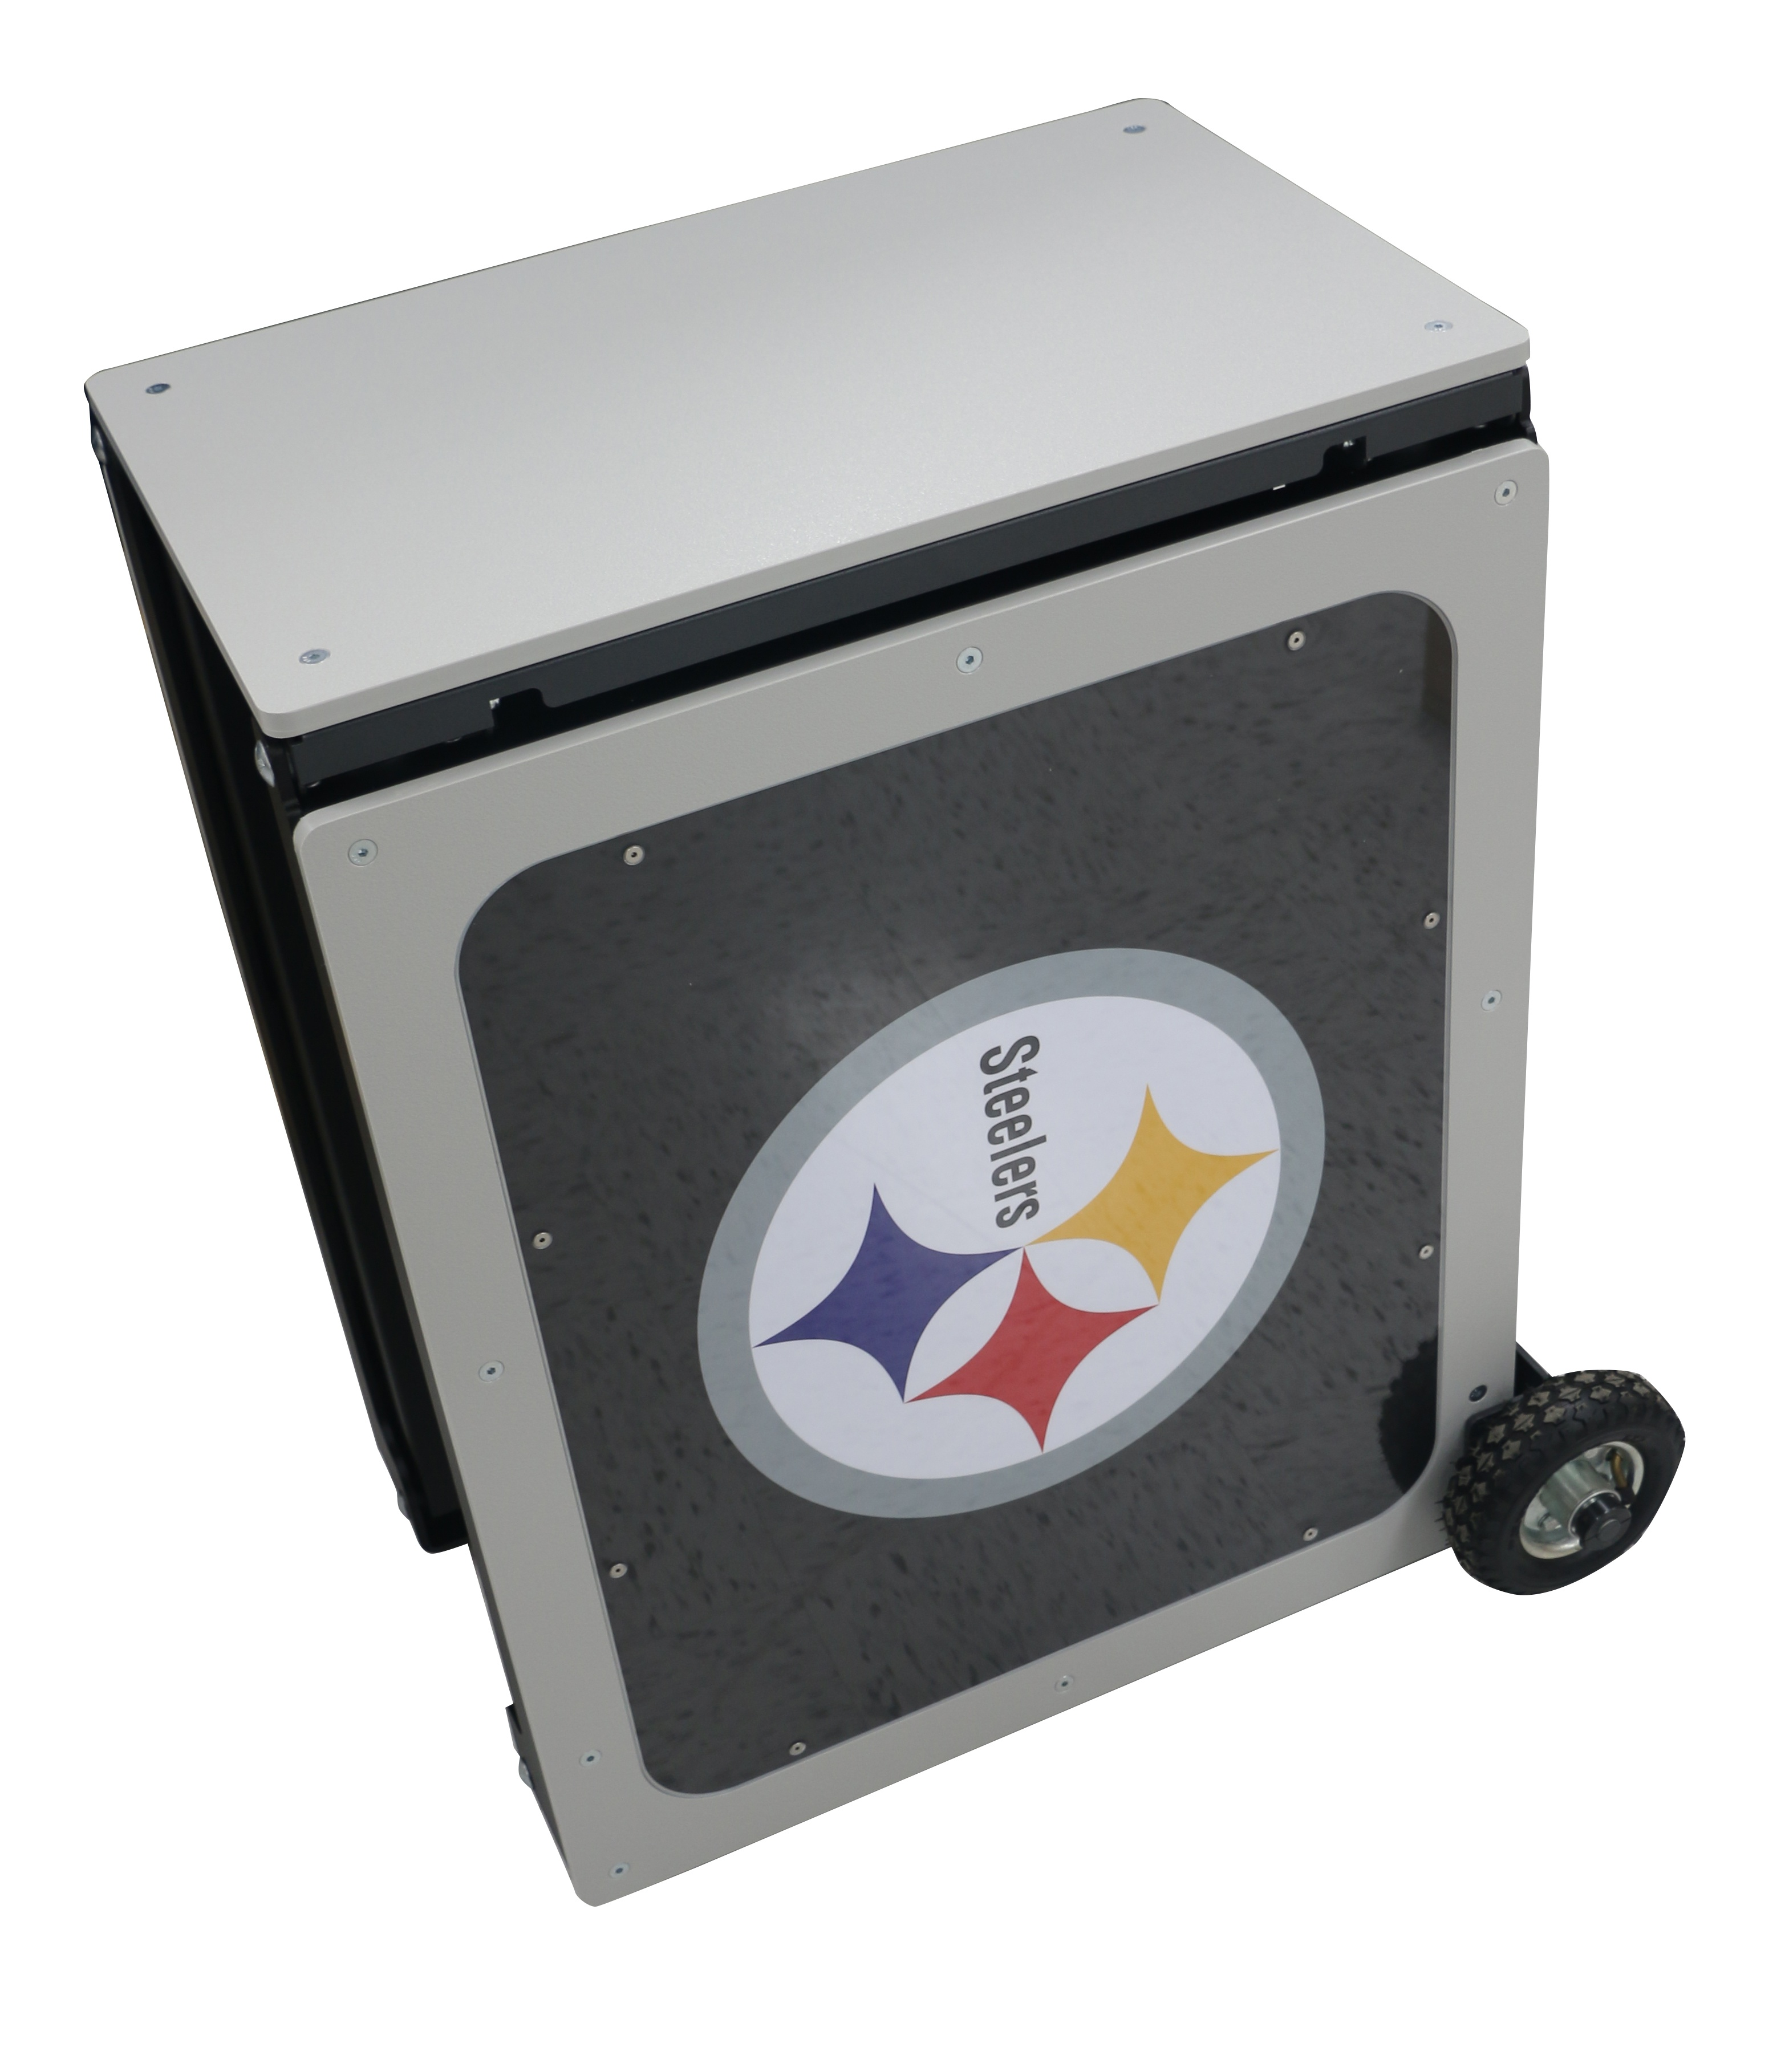 Pittsburgh Steelers-(PW4000)